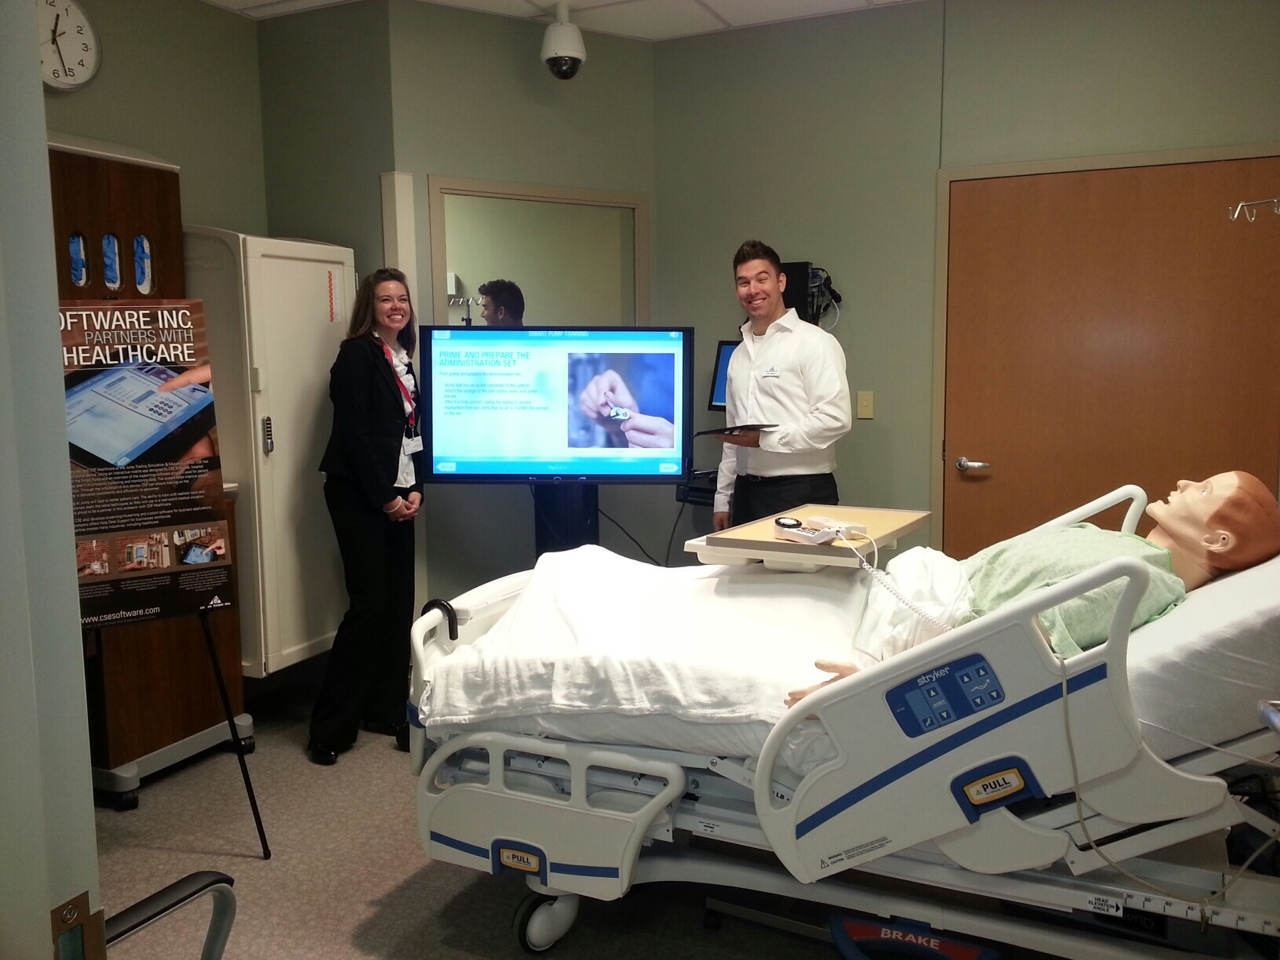 Nick Striegel, Multimedia Developer at CSE Software Inc. and nurse scholar Cassandra Kurtz demonstrate the new Smart Pump app developed by CSE.